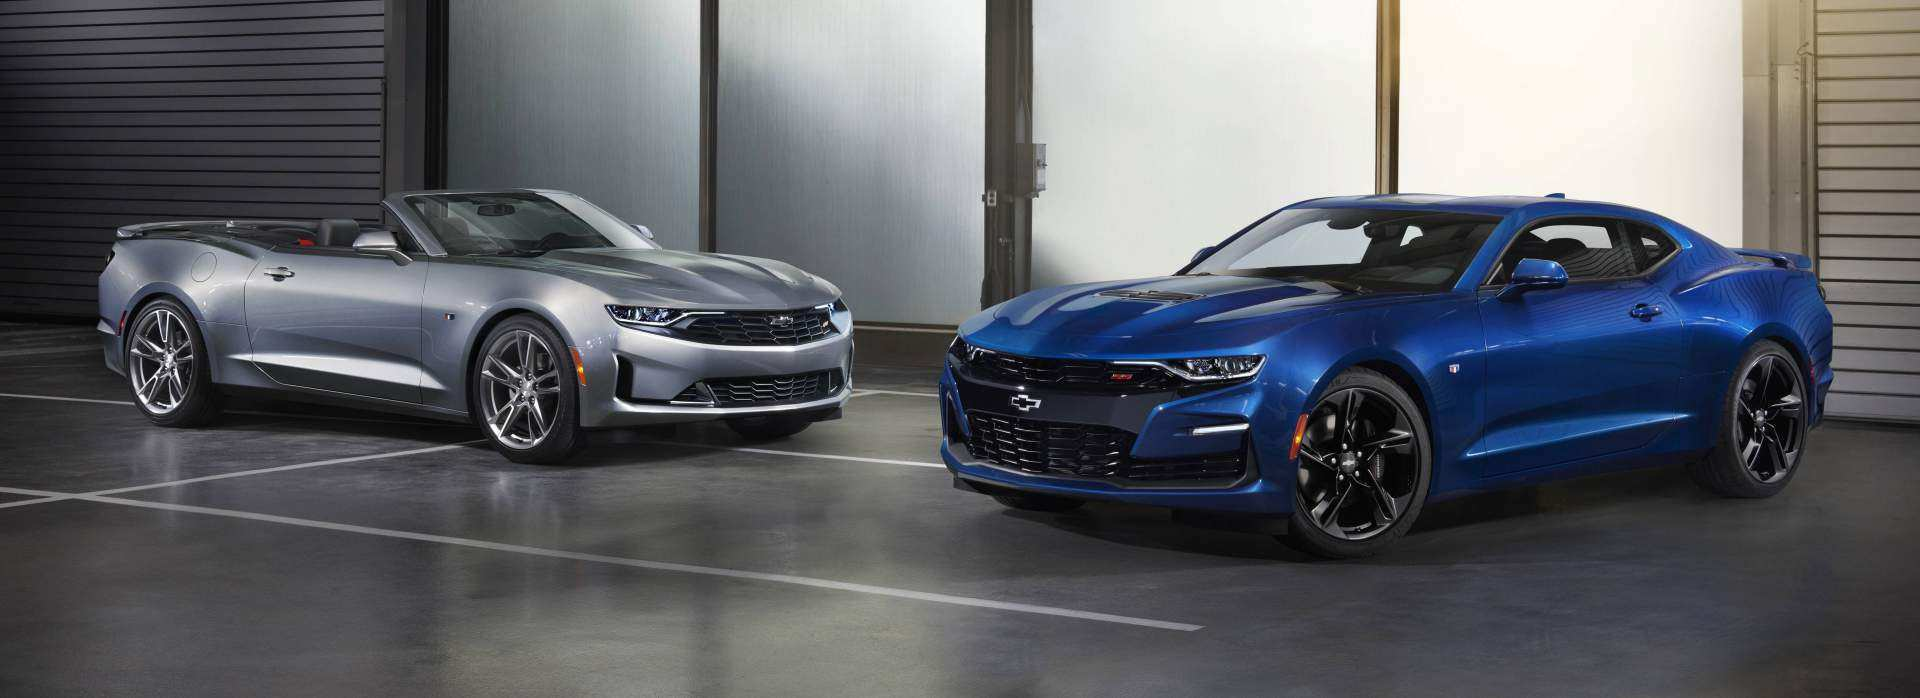 26 Great 2020 Chevy Camaro Specs with 2020 Chevy Camaro